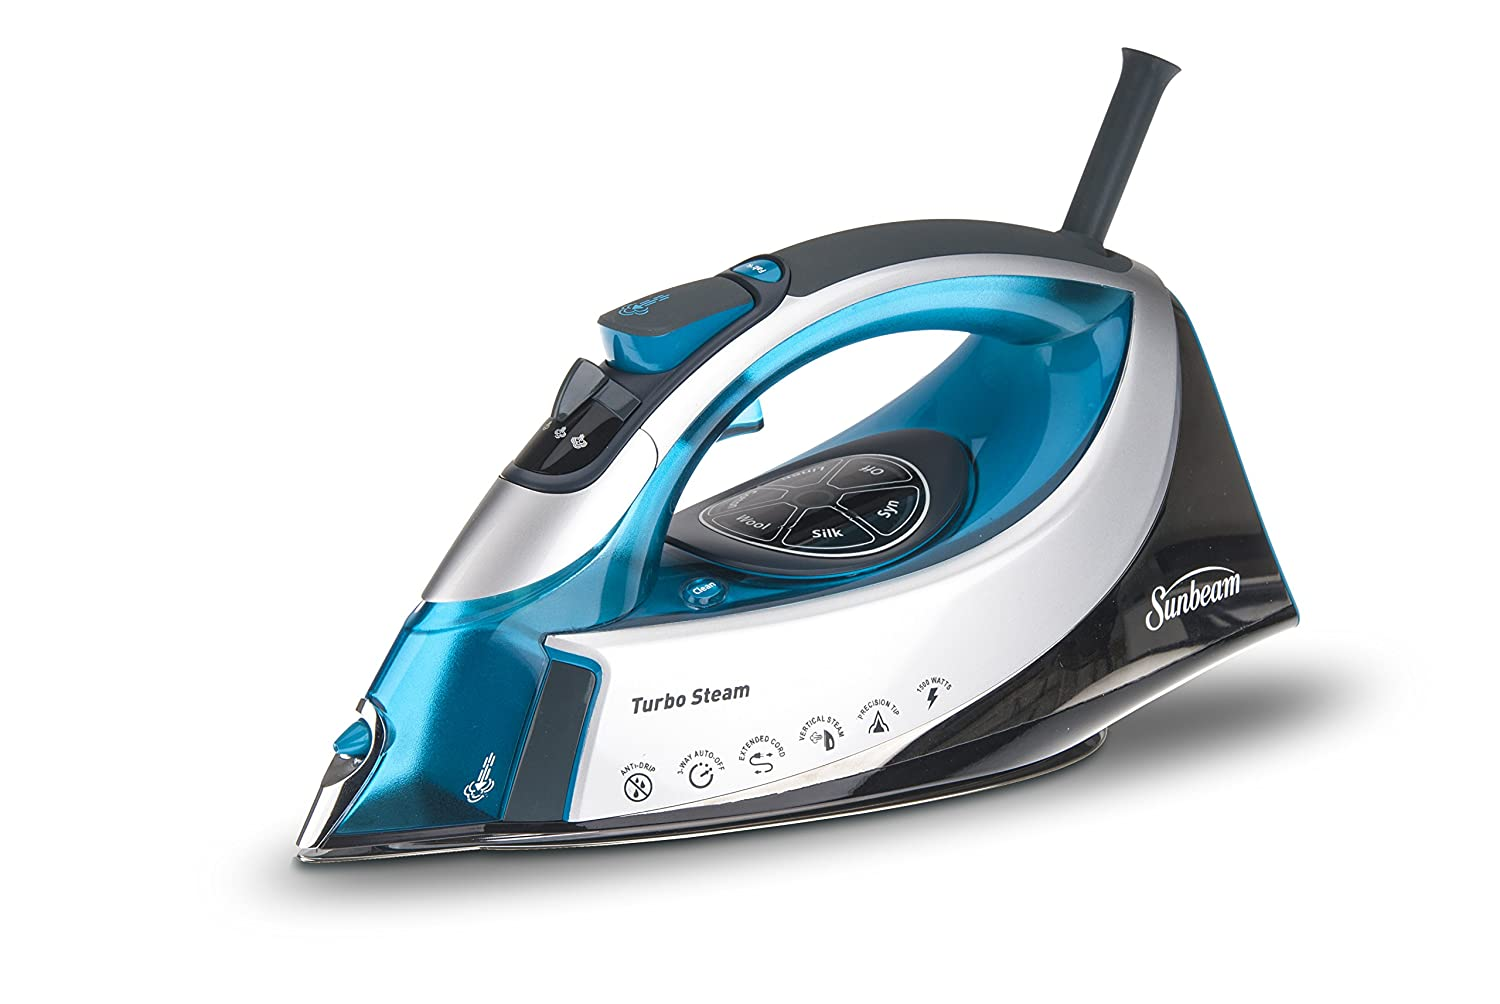 Sunbeam B00S6ZIXGO Turbo Steam 1500 Watt XL-Size Anti-Drip Digital Temperature Control Iron, Silver/Turquoise, 9.7 x 5 x 6.1 Aqua